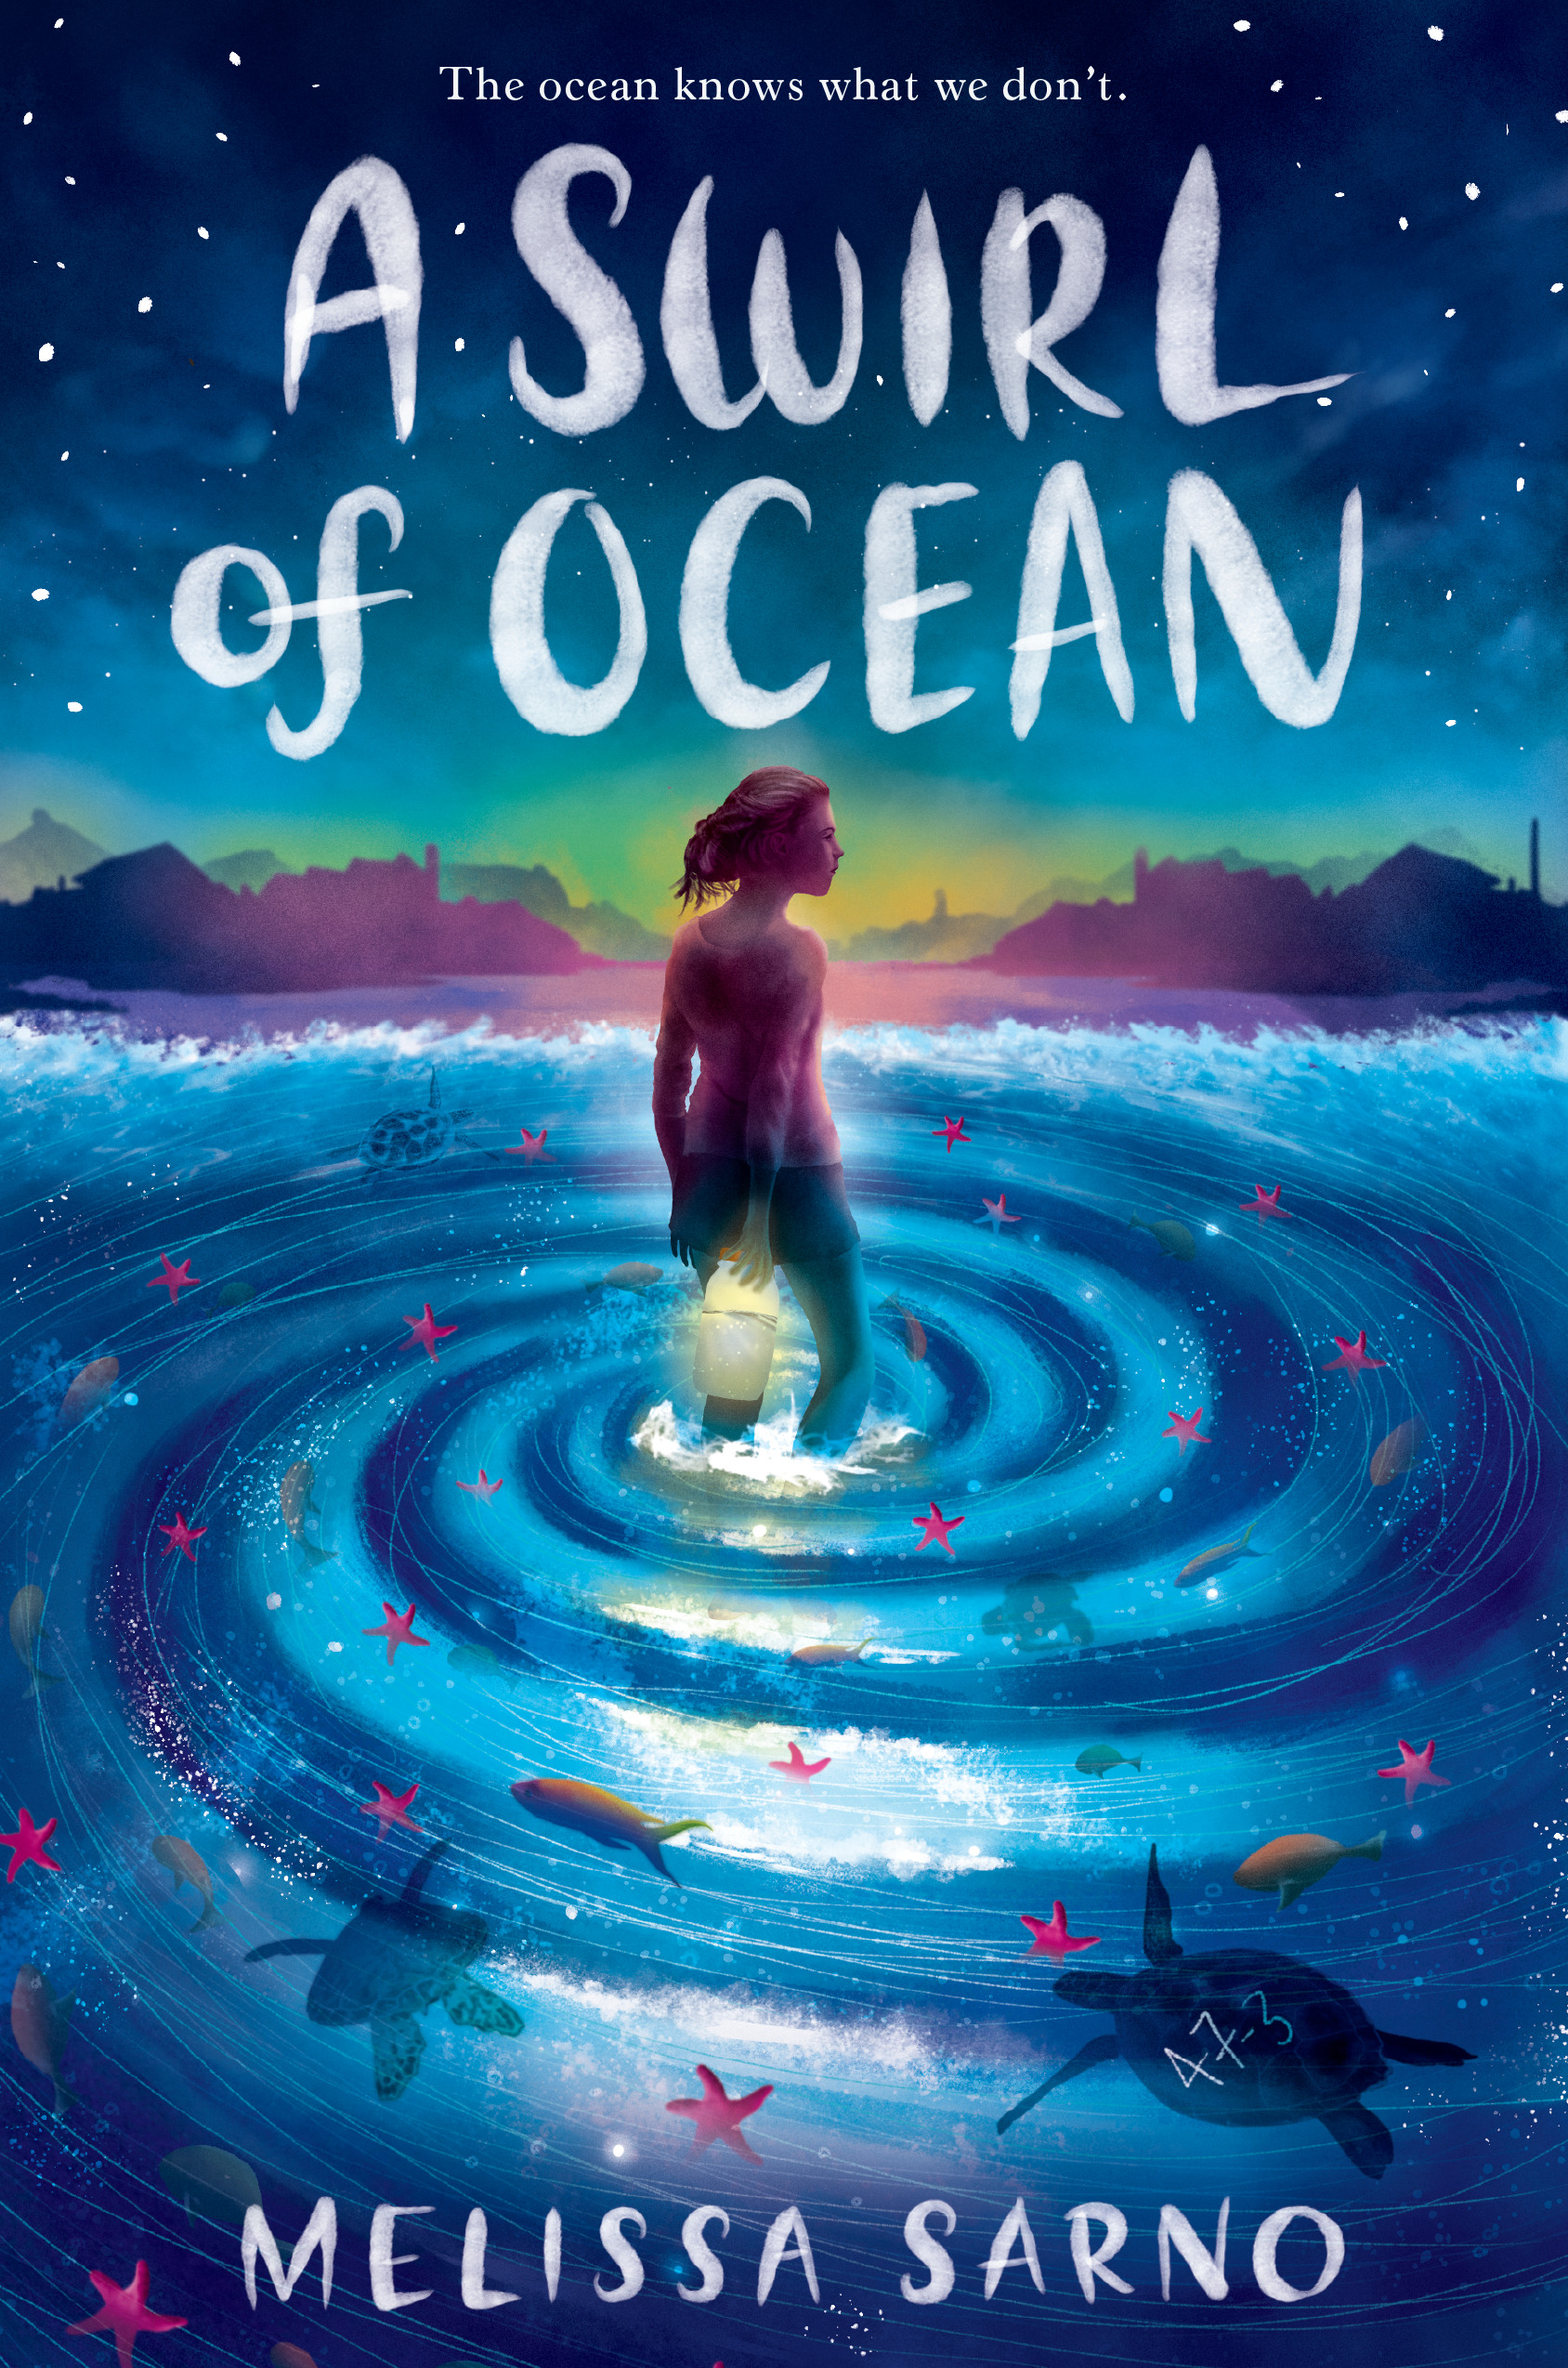 A Swirl of Ocean  by Melissa Sarno  Knopf BYR —- August 6, 2019